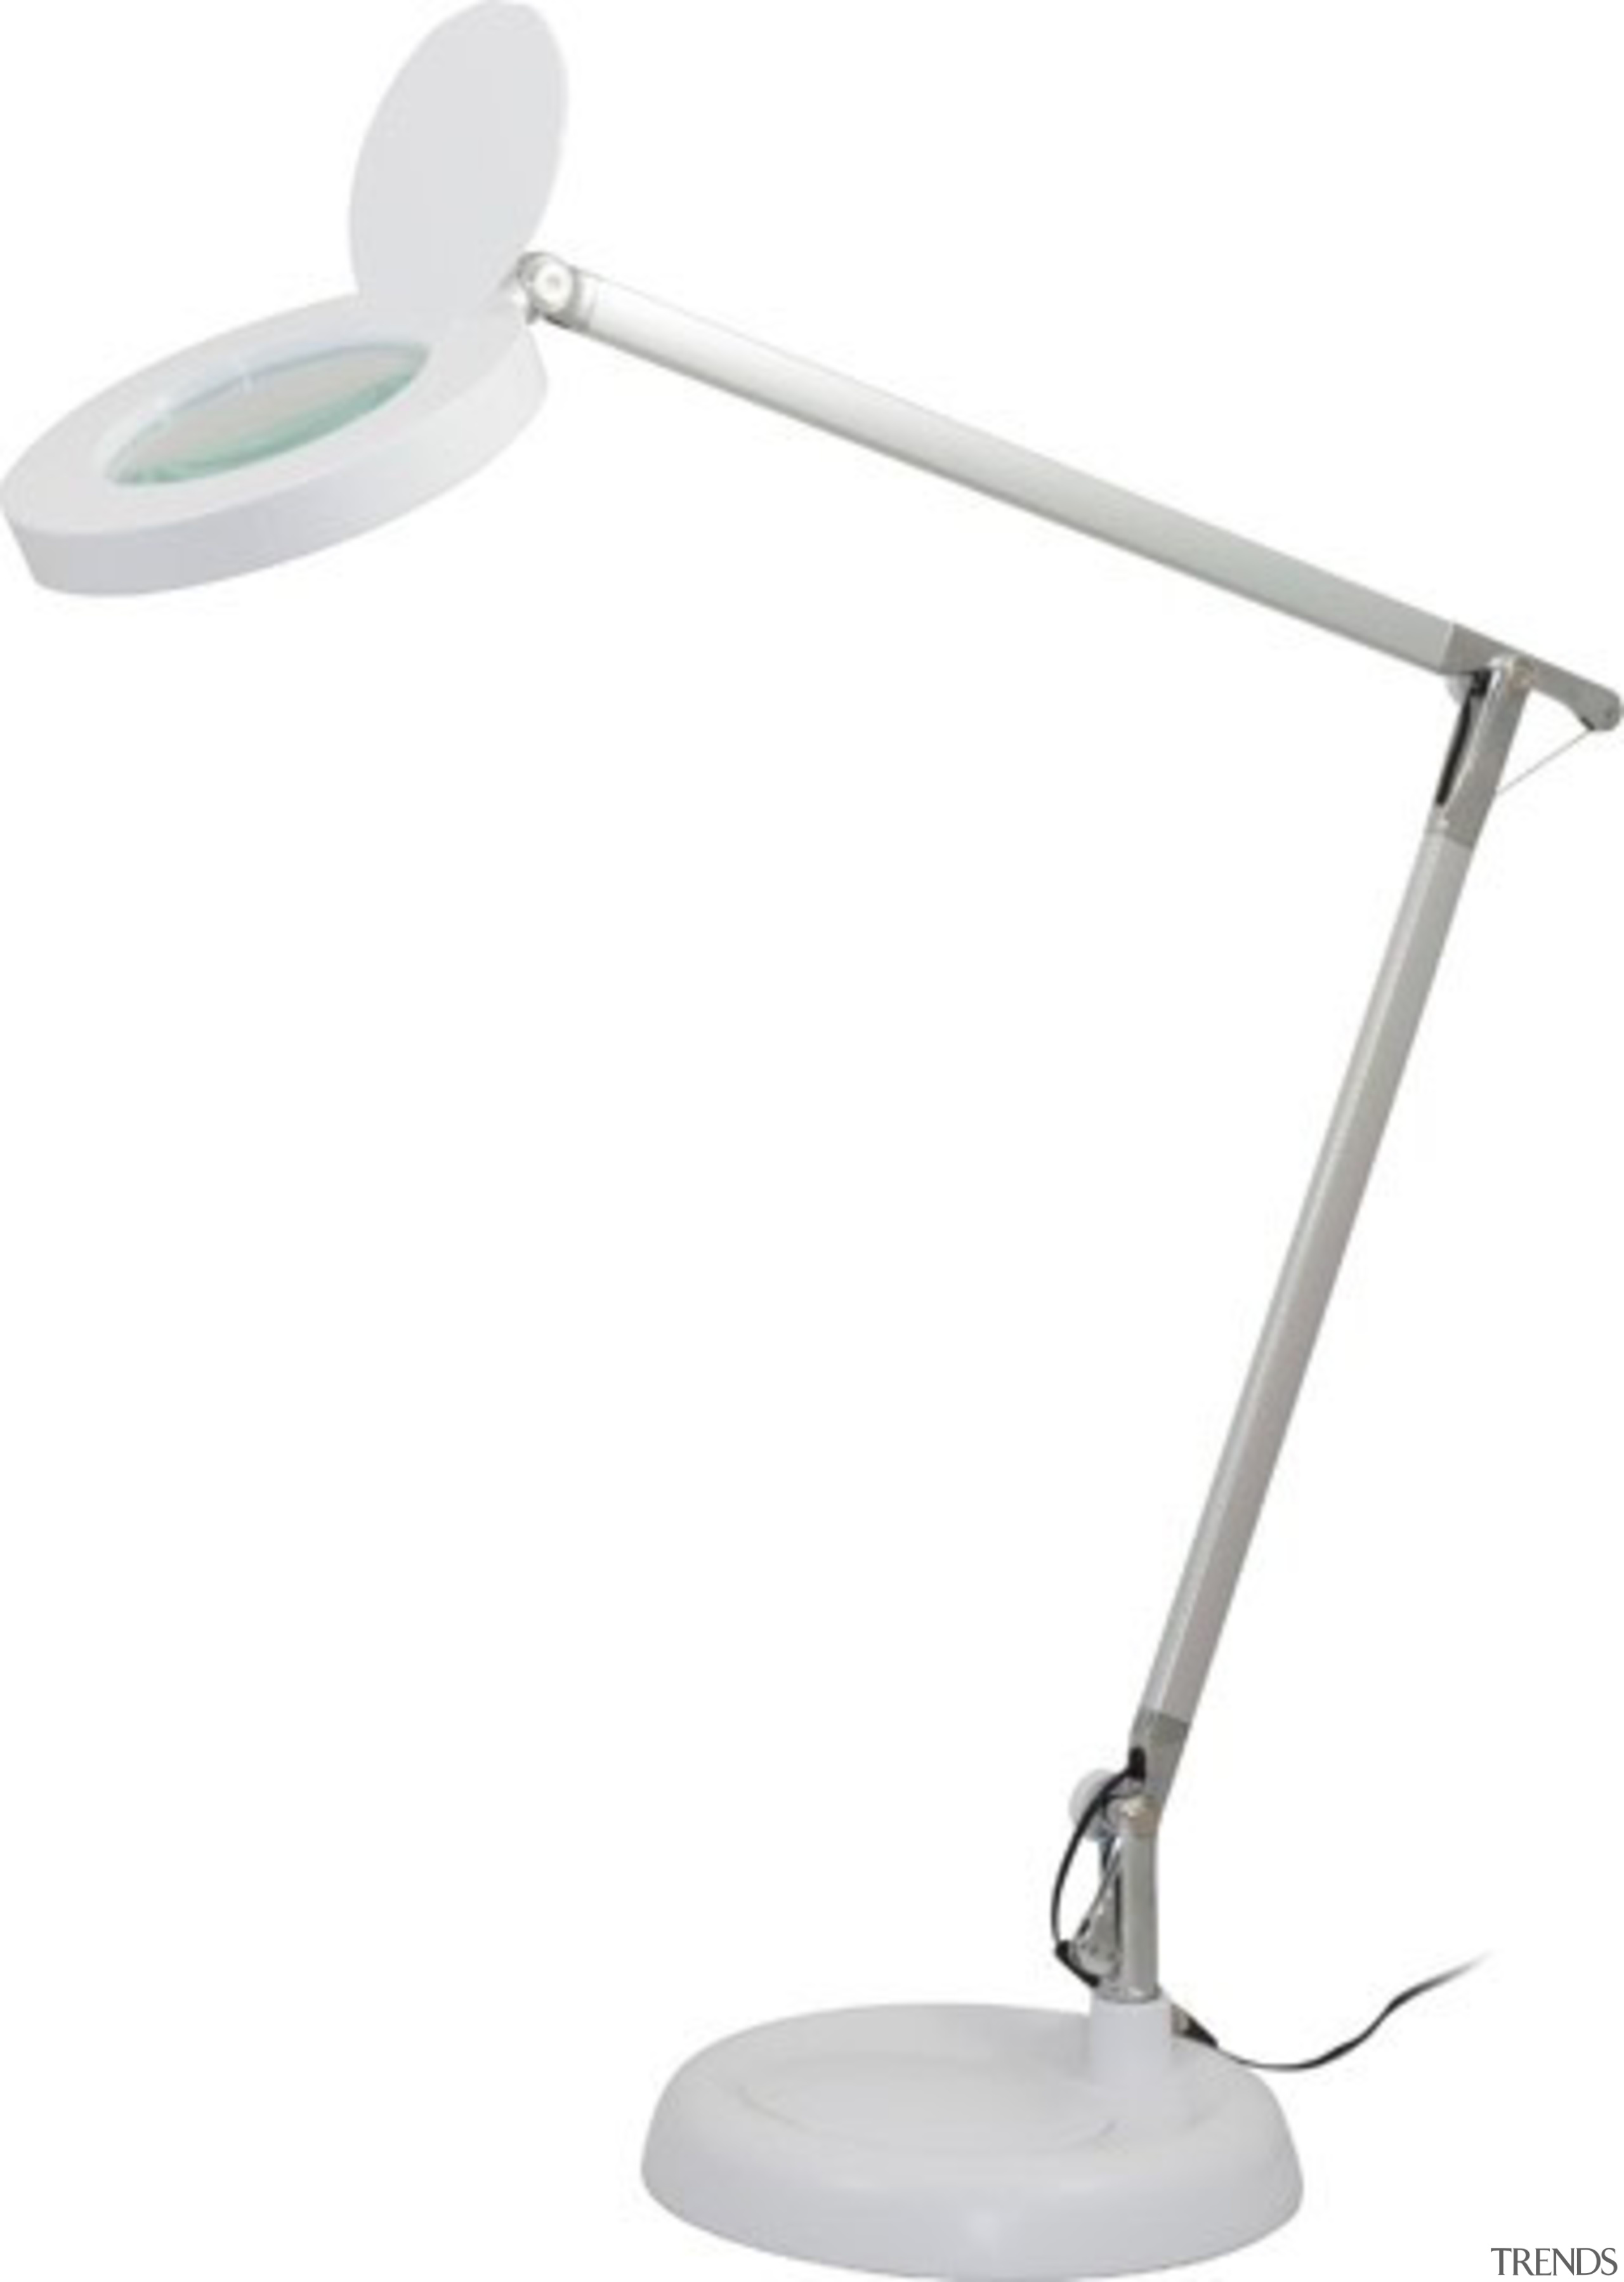 FeaturesThe Lente combines a 6w LED light source lighting, product, product design, white